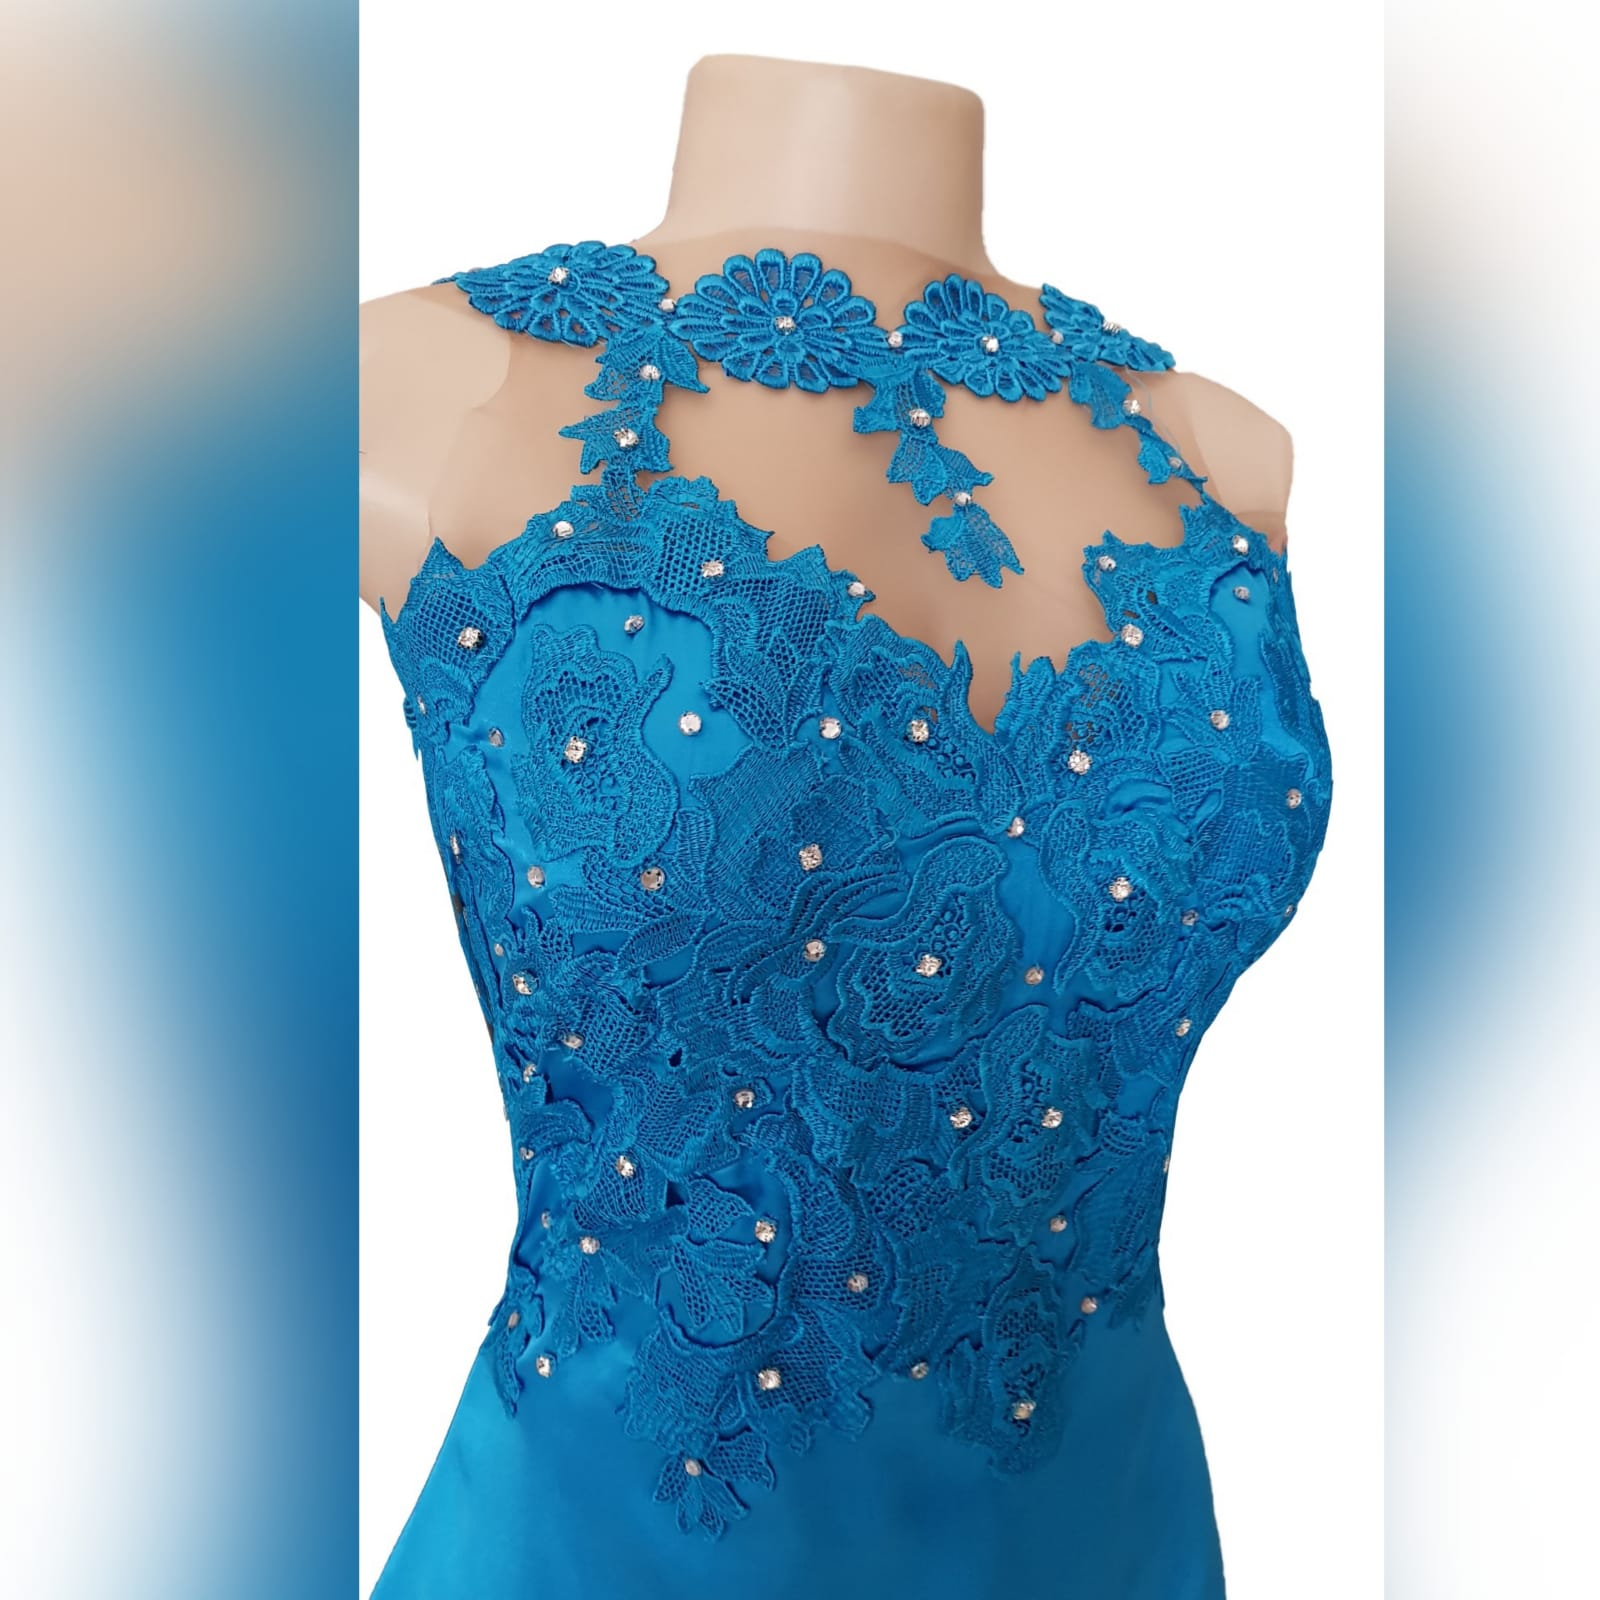 Blue long satin lace prom dress 7 blue long satin lace prom dress. Lace bodice with an illusion neckline and oval back opening with a slit and a train.